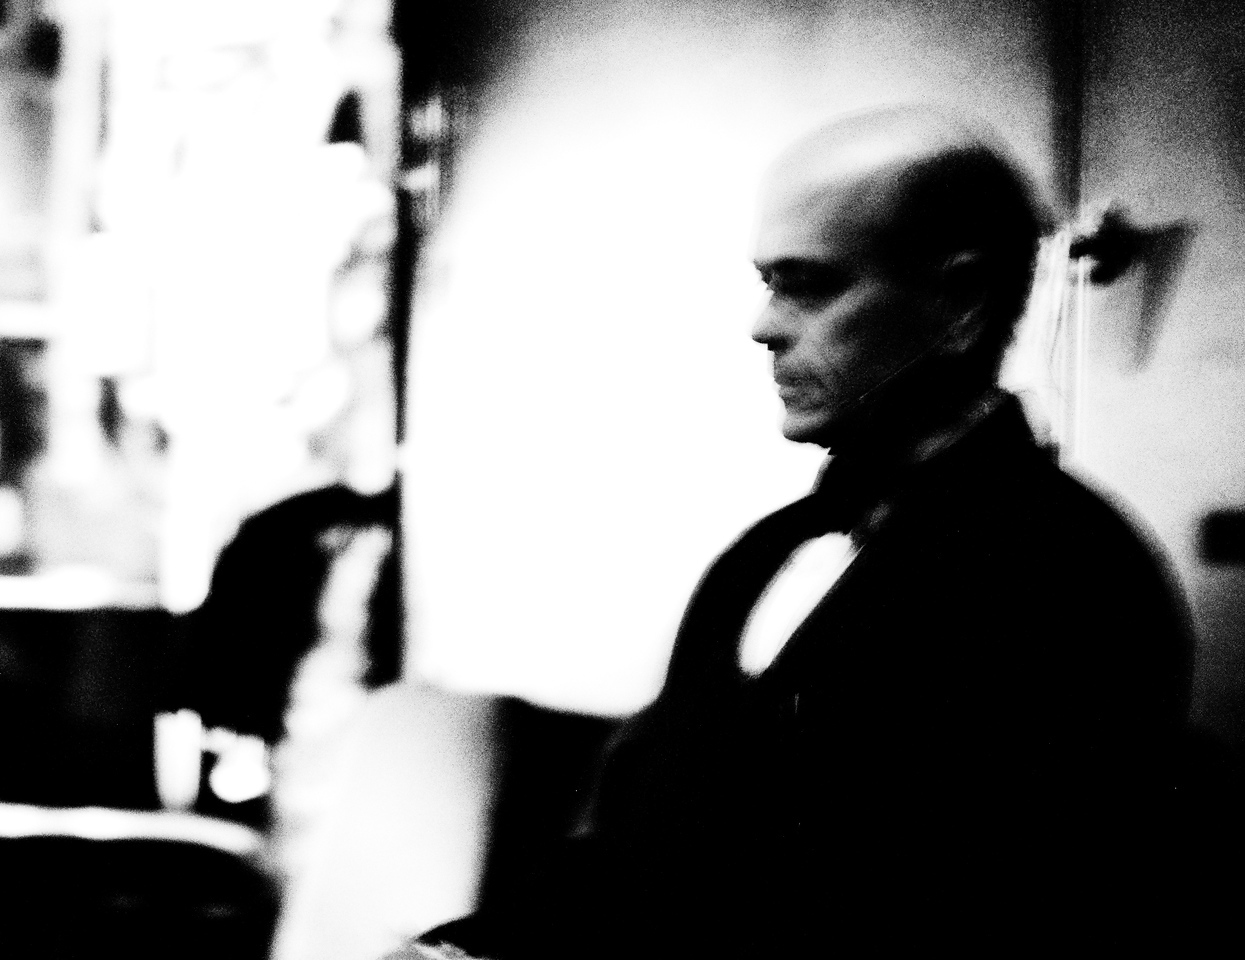 Robert Picardo, backstage before the concert.  The Kitchener-Waterloo Symphony presents STAR TREK, the music, conducted by John Morris Russell, with special hosts John de Lancie (Q) and Robert Picardo (Voyager: The Doctor).  Photograph copyright 2010 Sean M Puckett, all rights reserved.